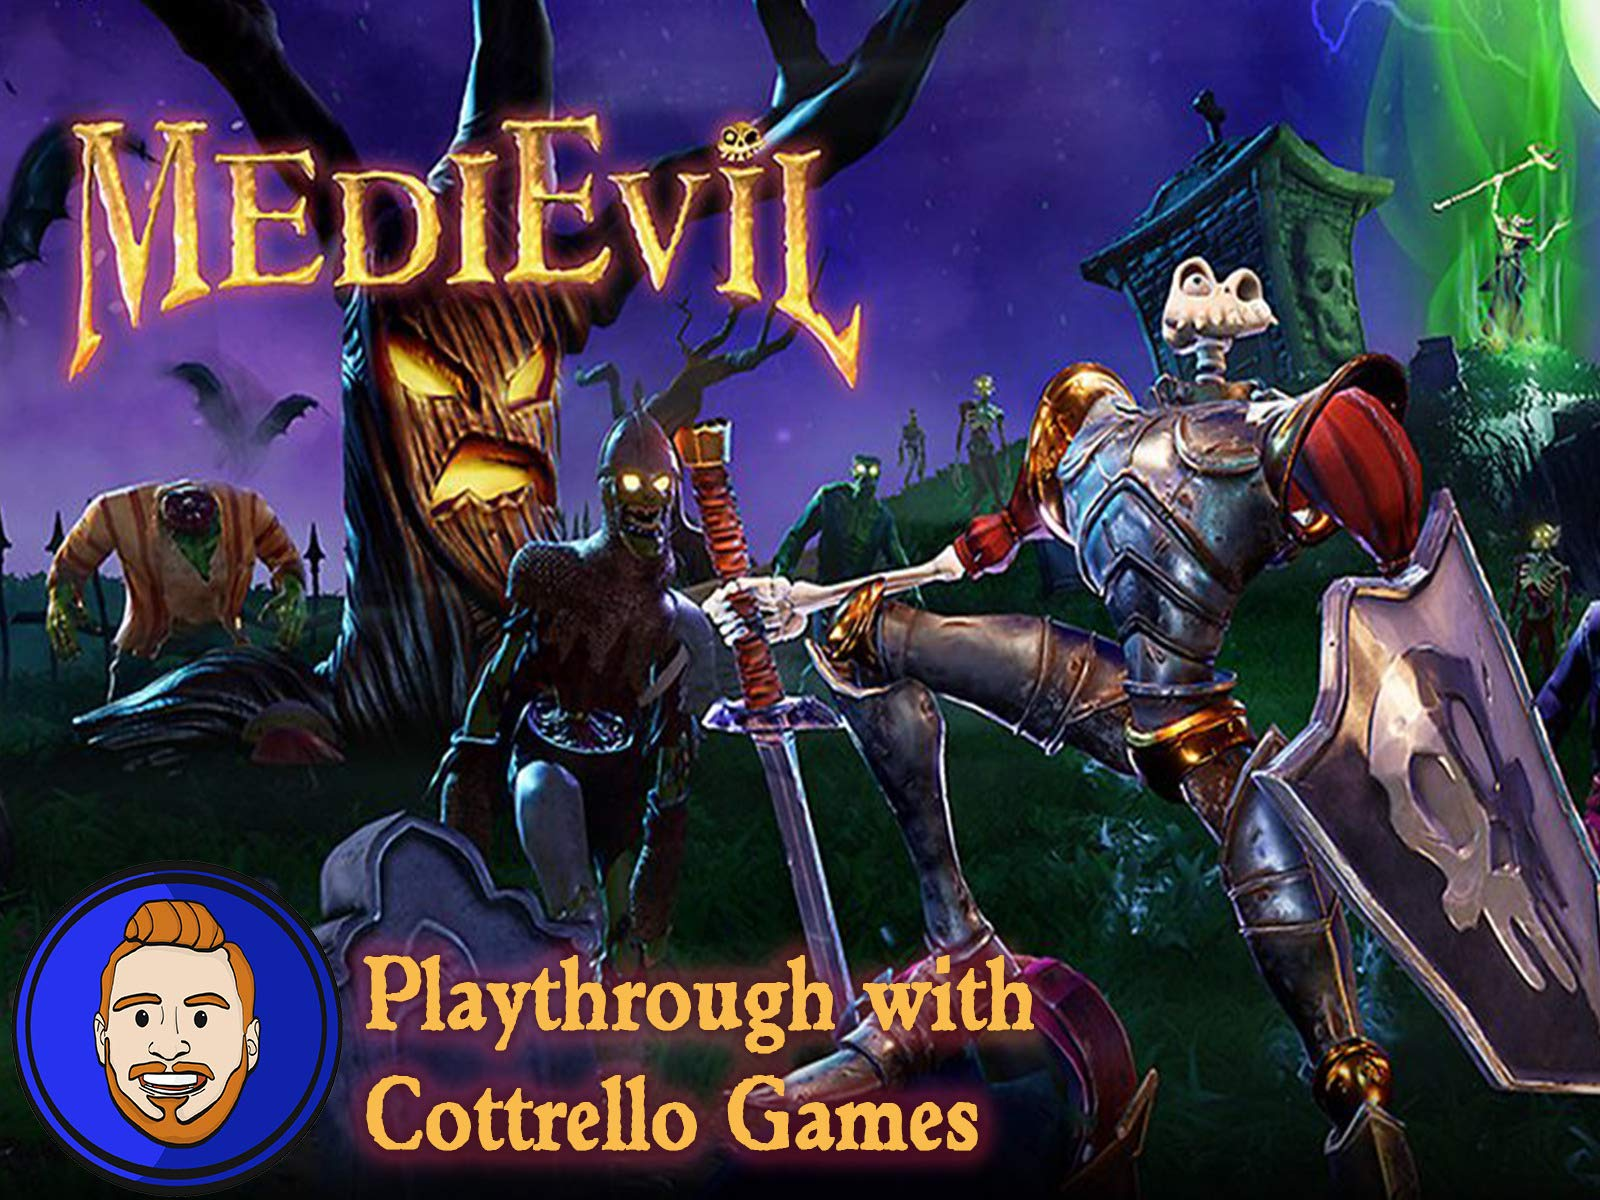 MediEvil Playthrough with Cottrello Games